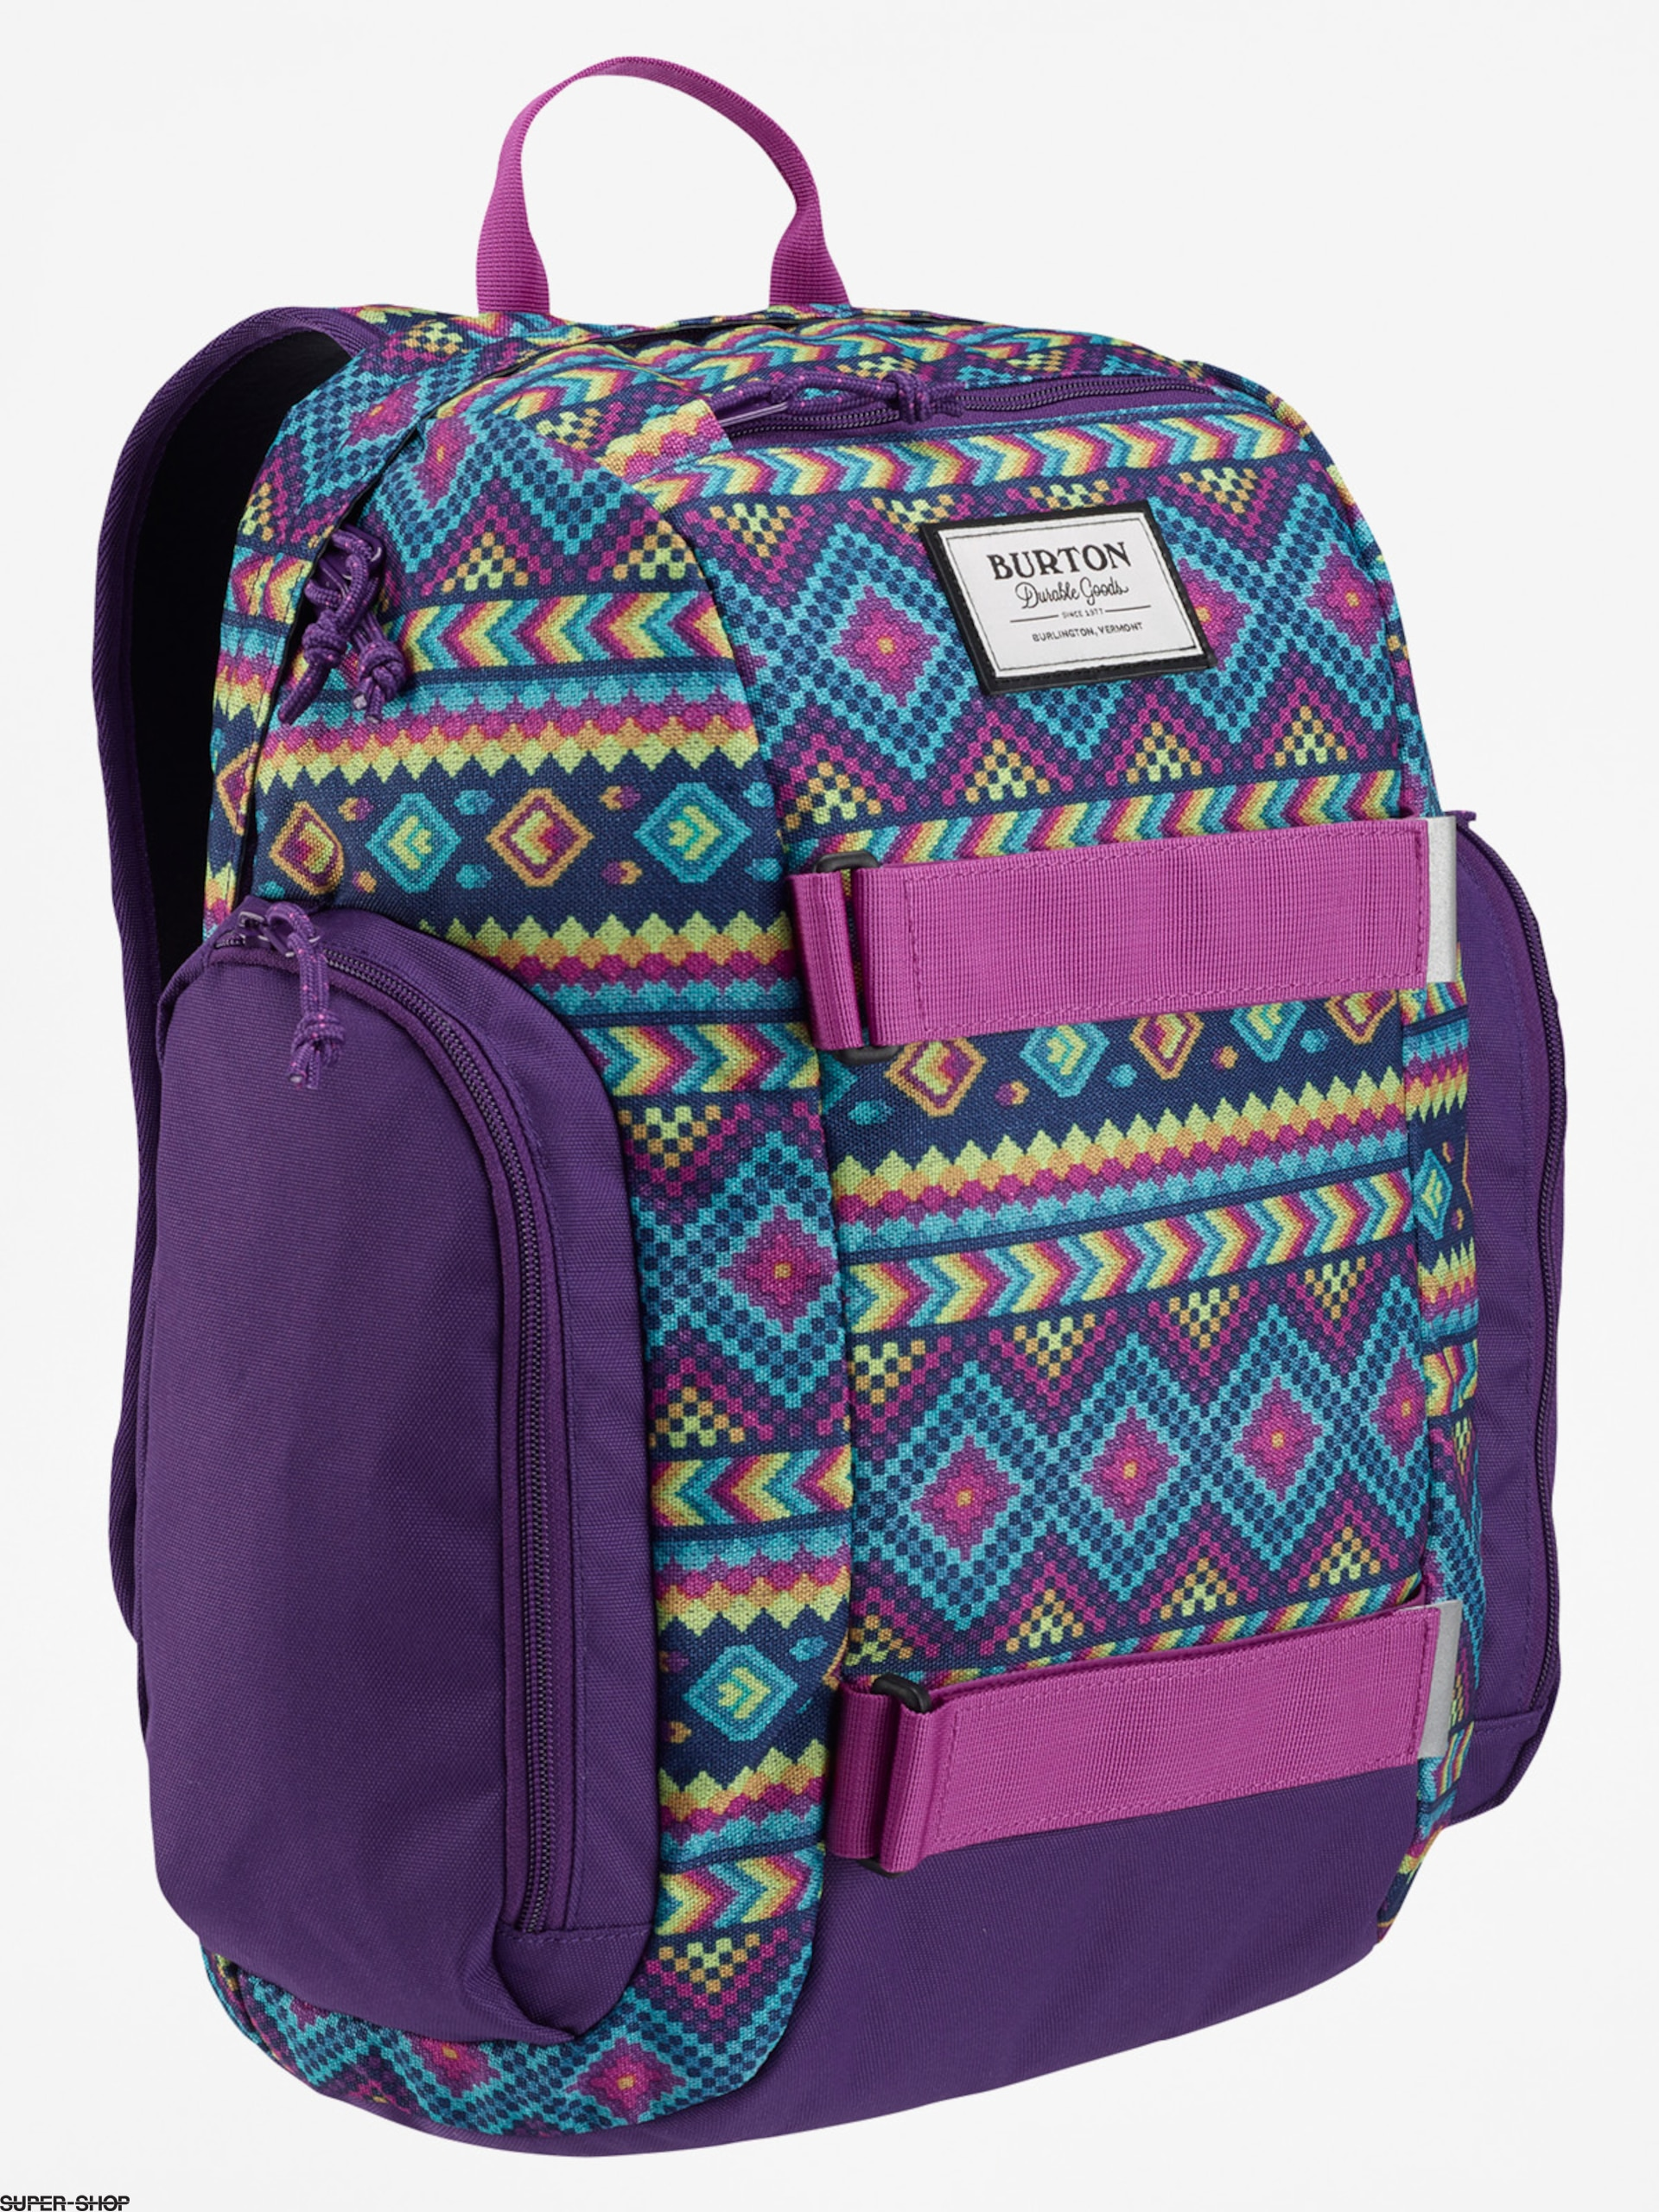 Burton Backpack Yth Metalhead (bohemia print)